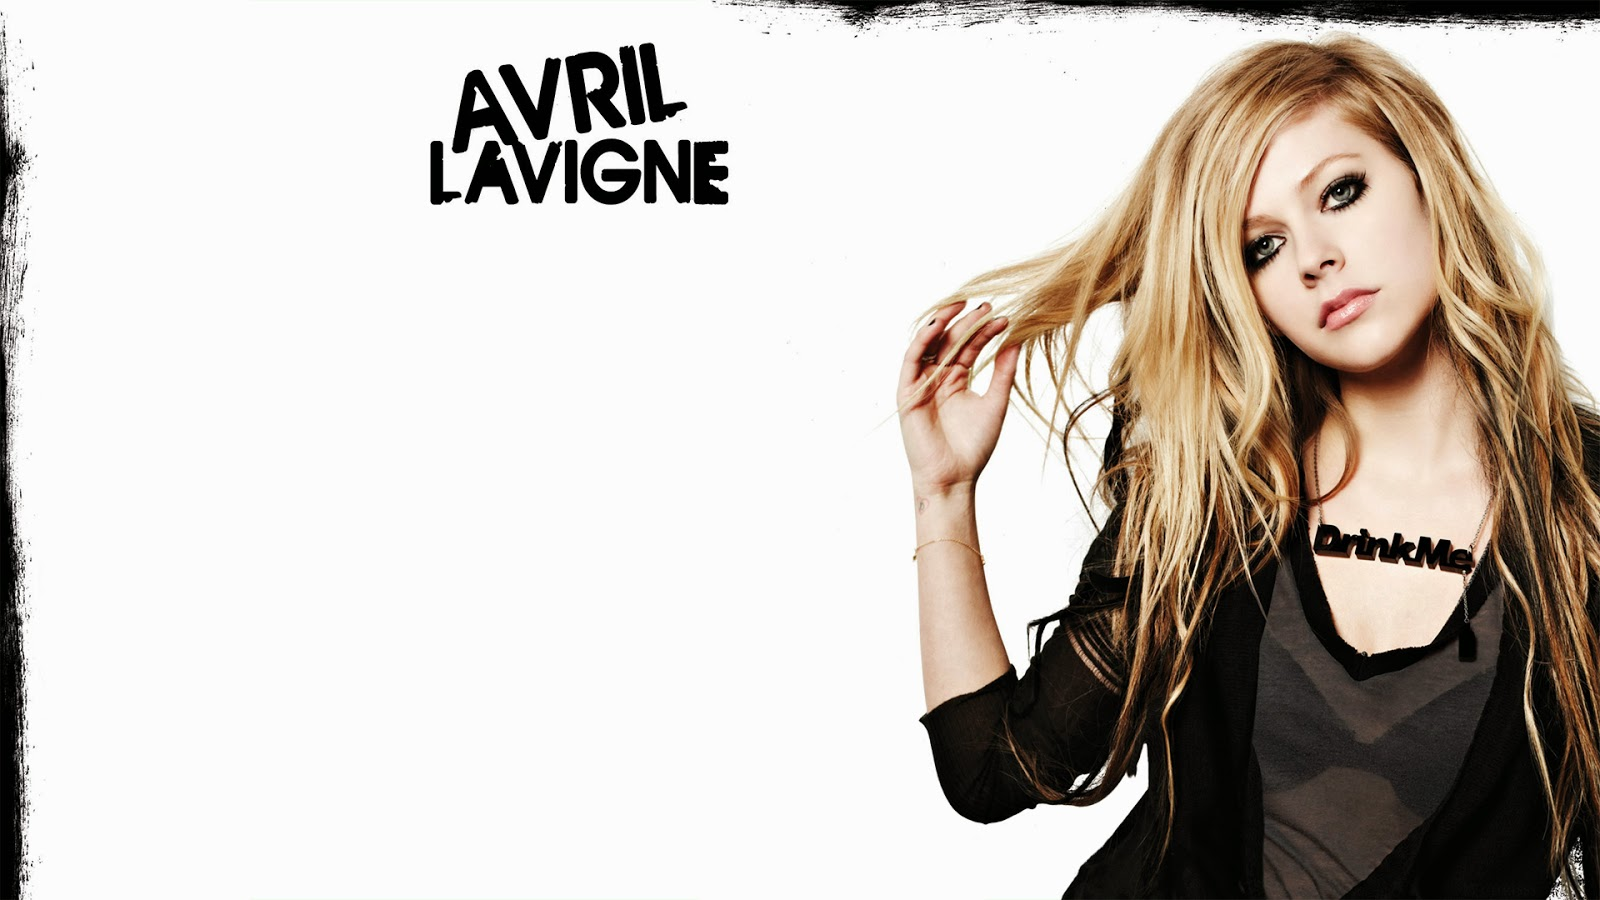 avril lavigne mp3